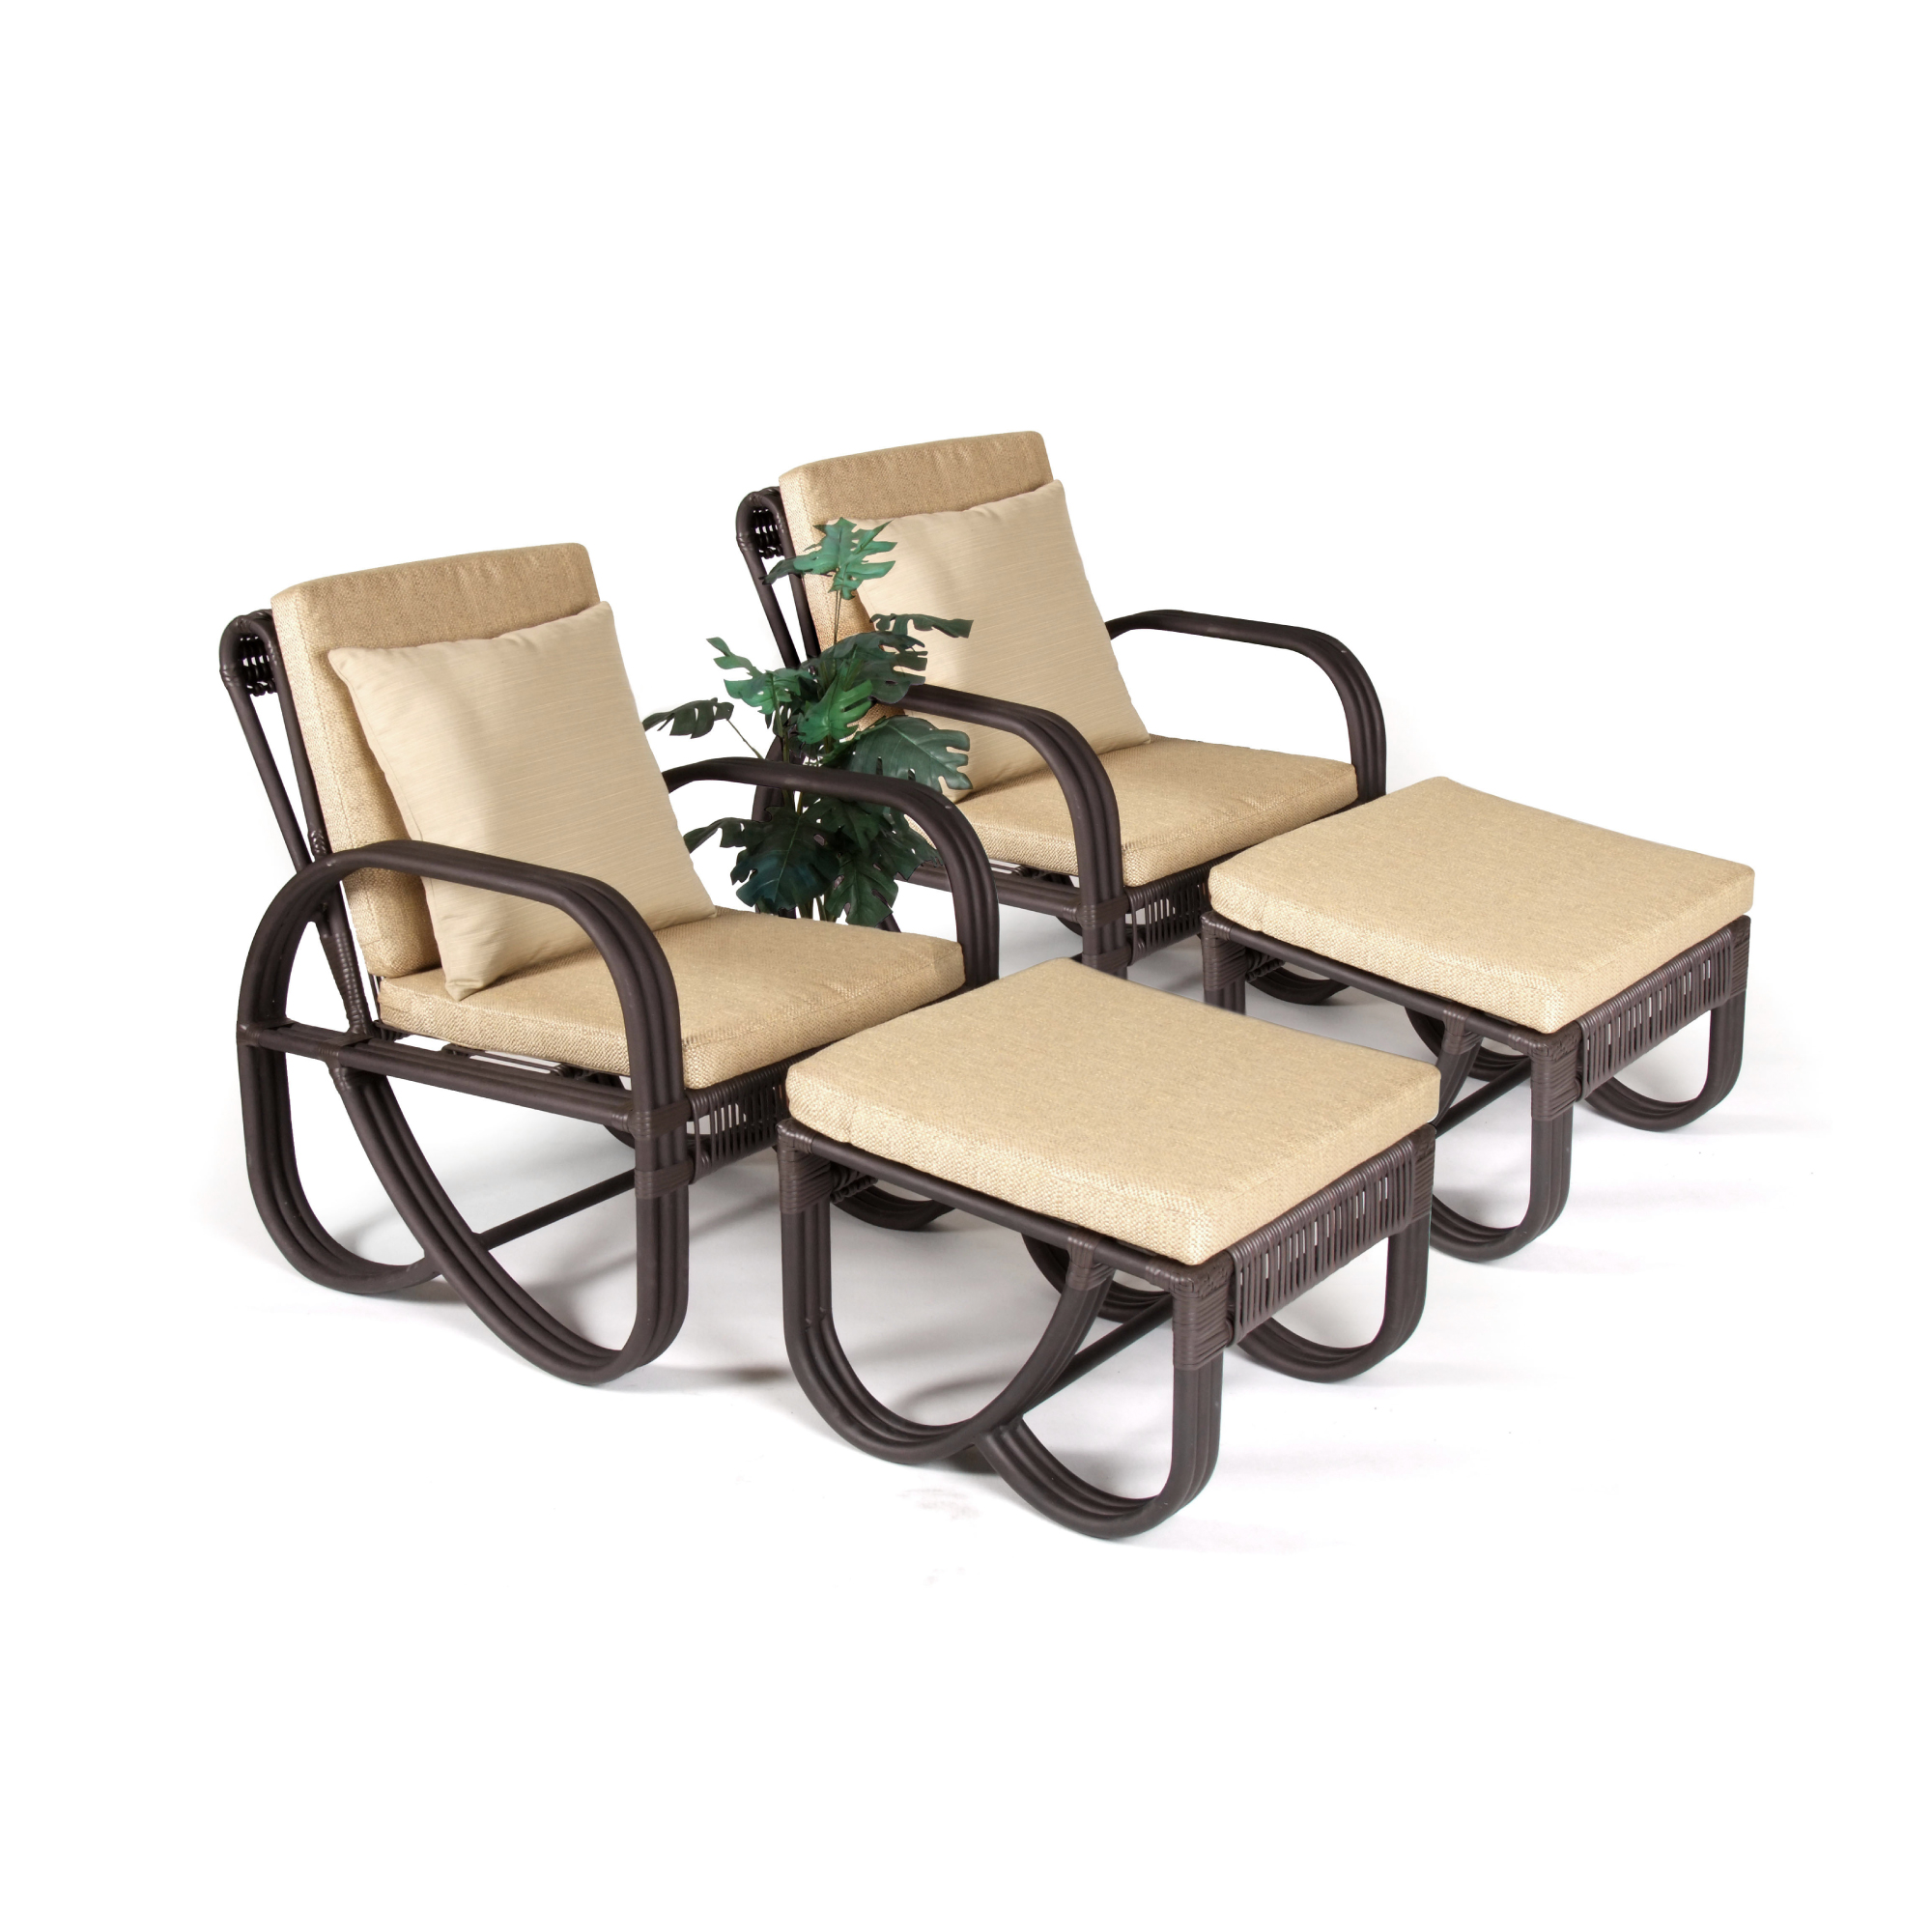 Image result for http://ncoutdoorthai.com/product-category/diningchair/